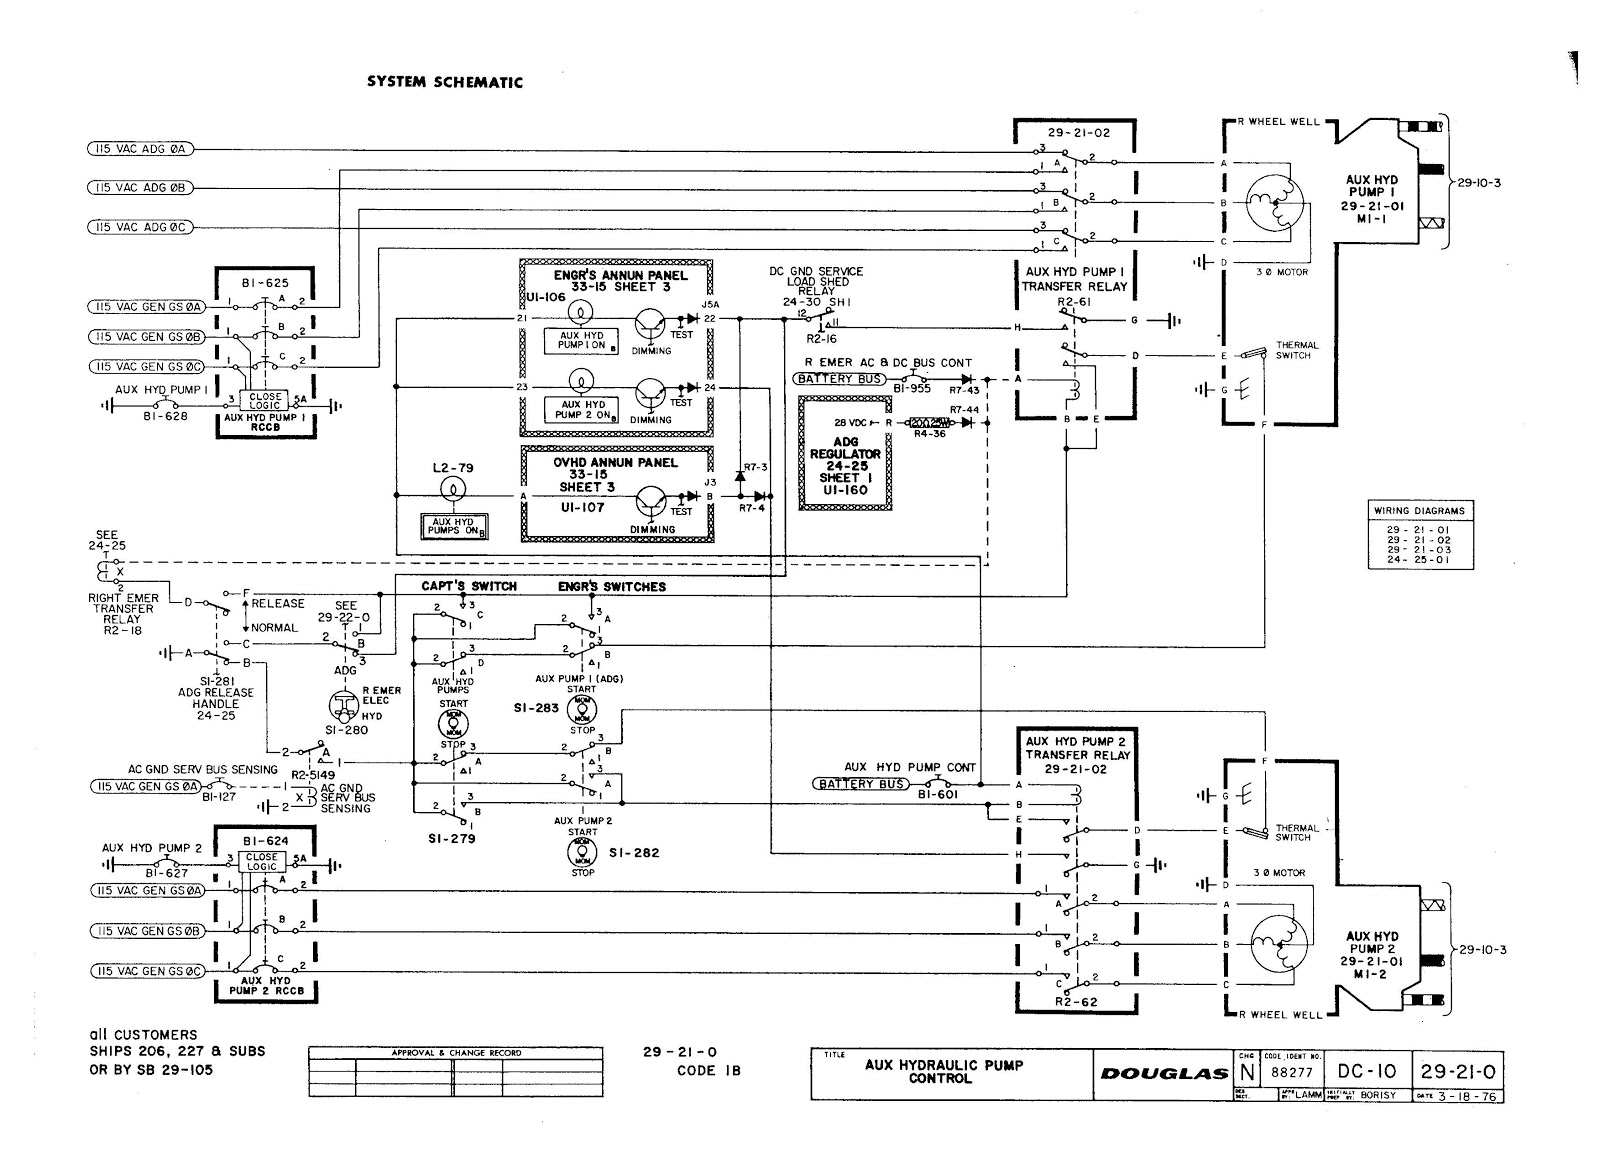 how to read avionics wiring diagrams wiring diagrams schematics rh noppon co Wiring Schematics Wiring Schematics